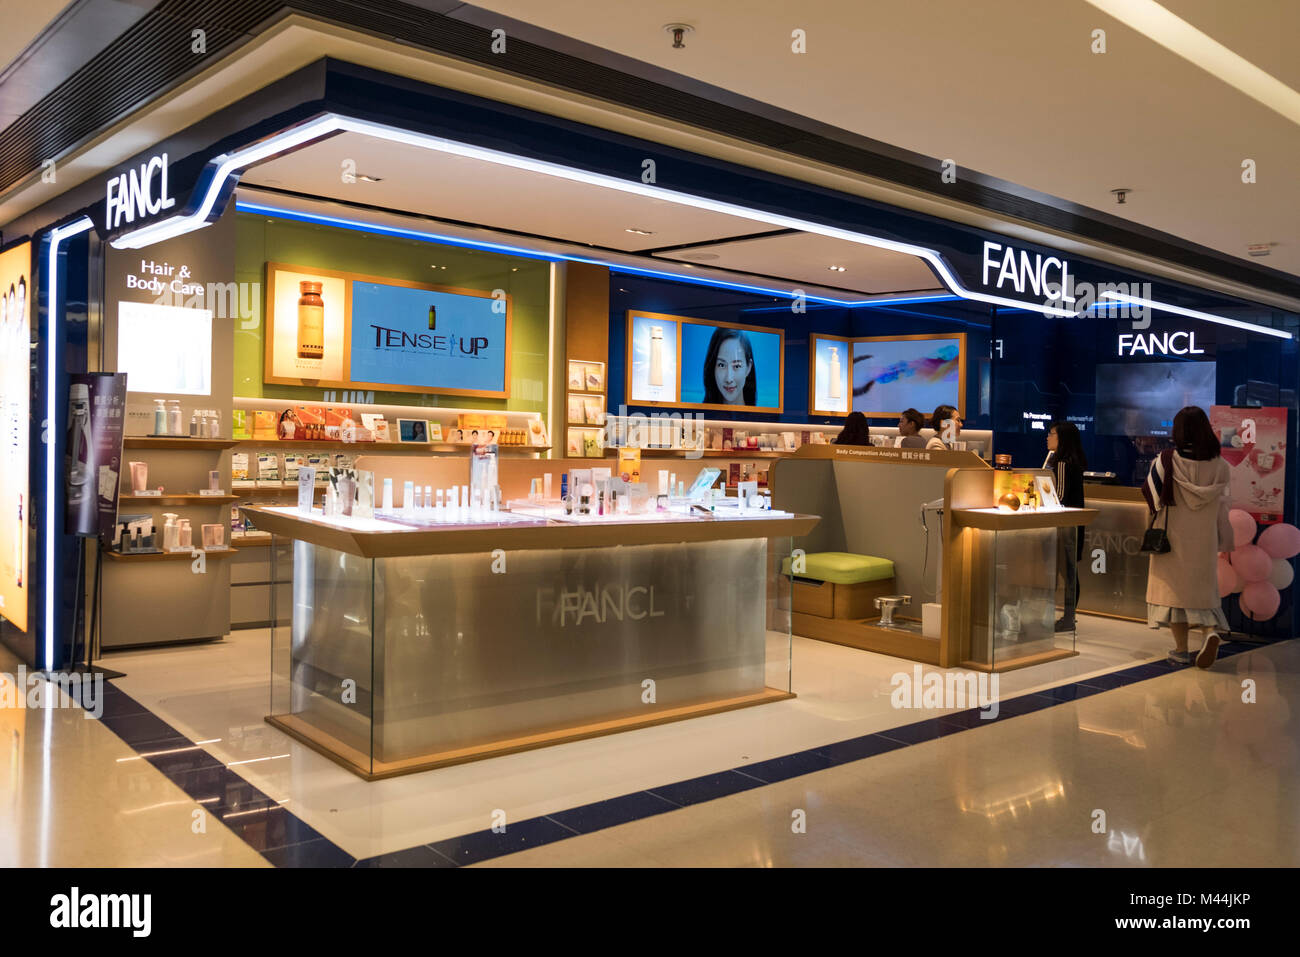 Hong Kong - February 11, 2018: Fancl shop in Hong Kong. FANCL Corporation is a listed company founded in Yokohama Stock Photo